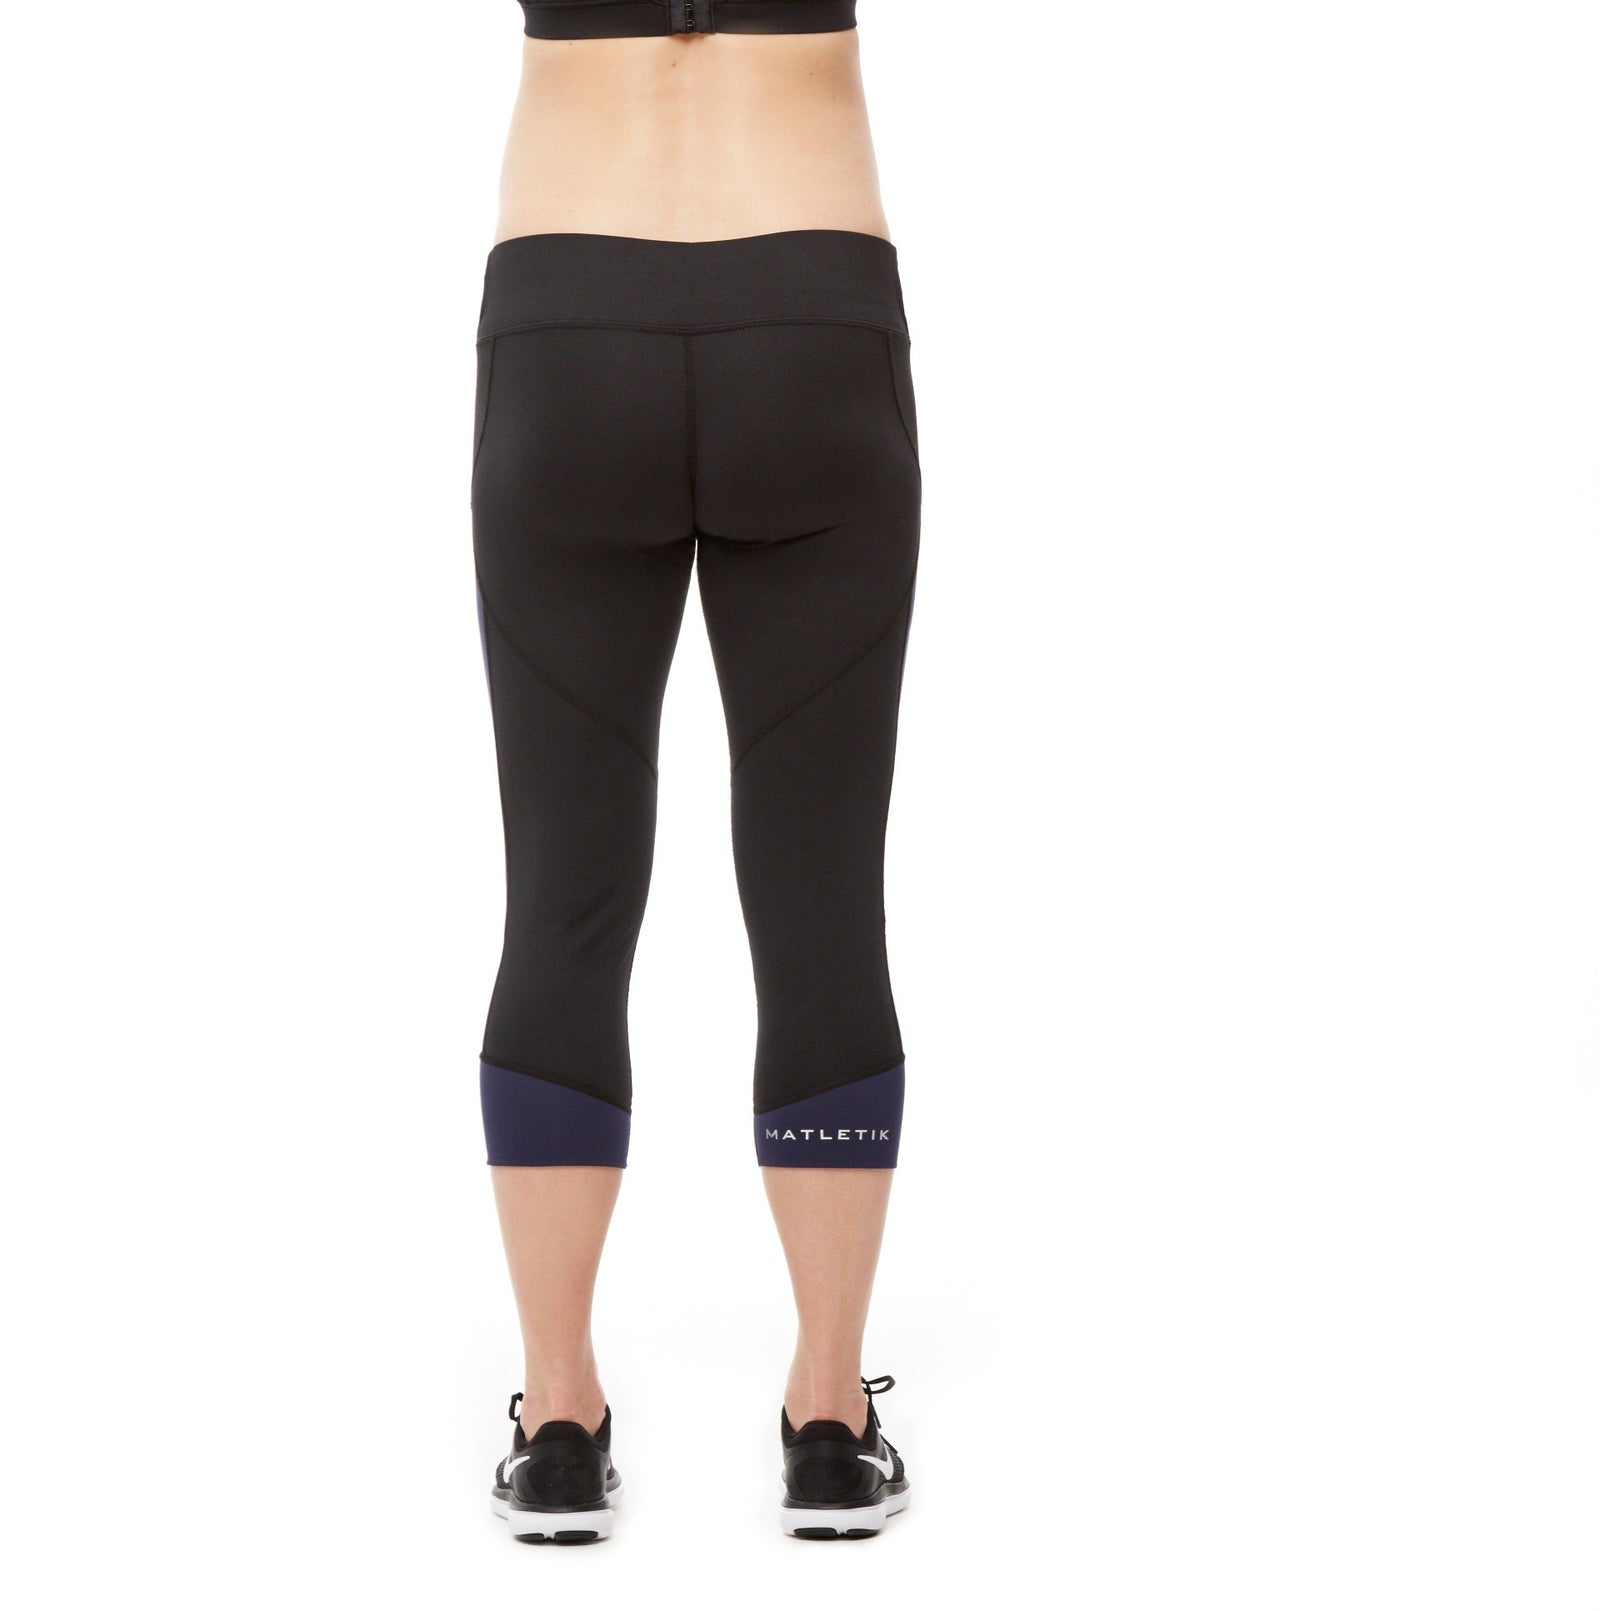 FOCUS LEGGING - Active 3/4 with low waist